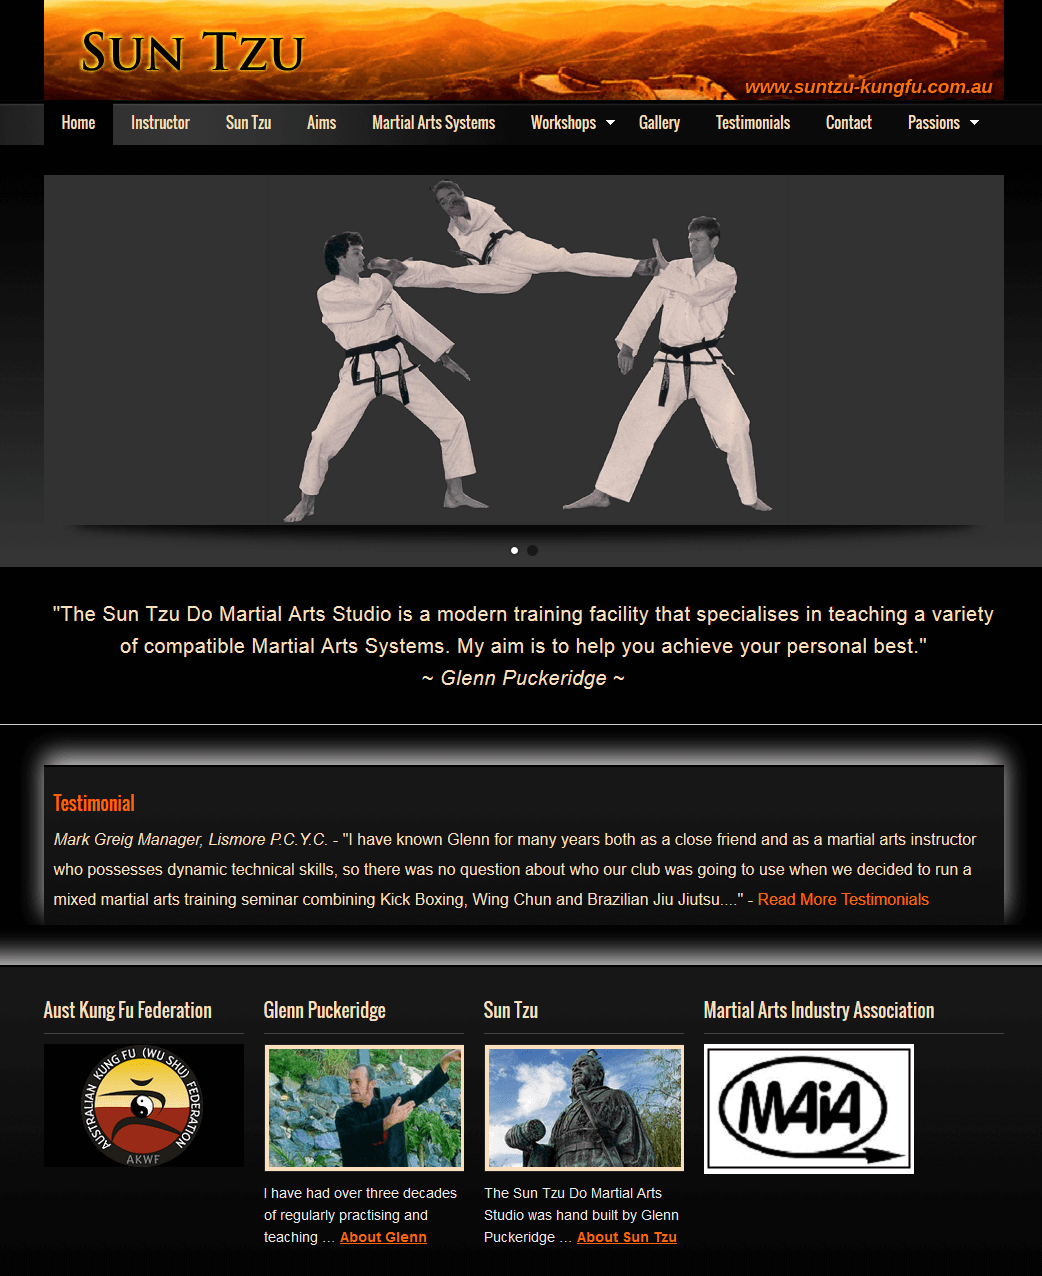 Sun Tzu Martial Arts Studio Website